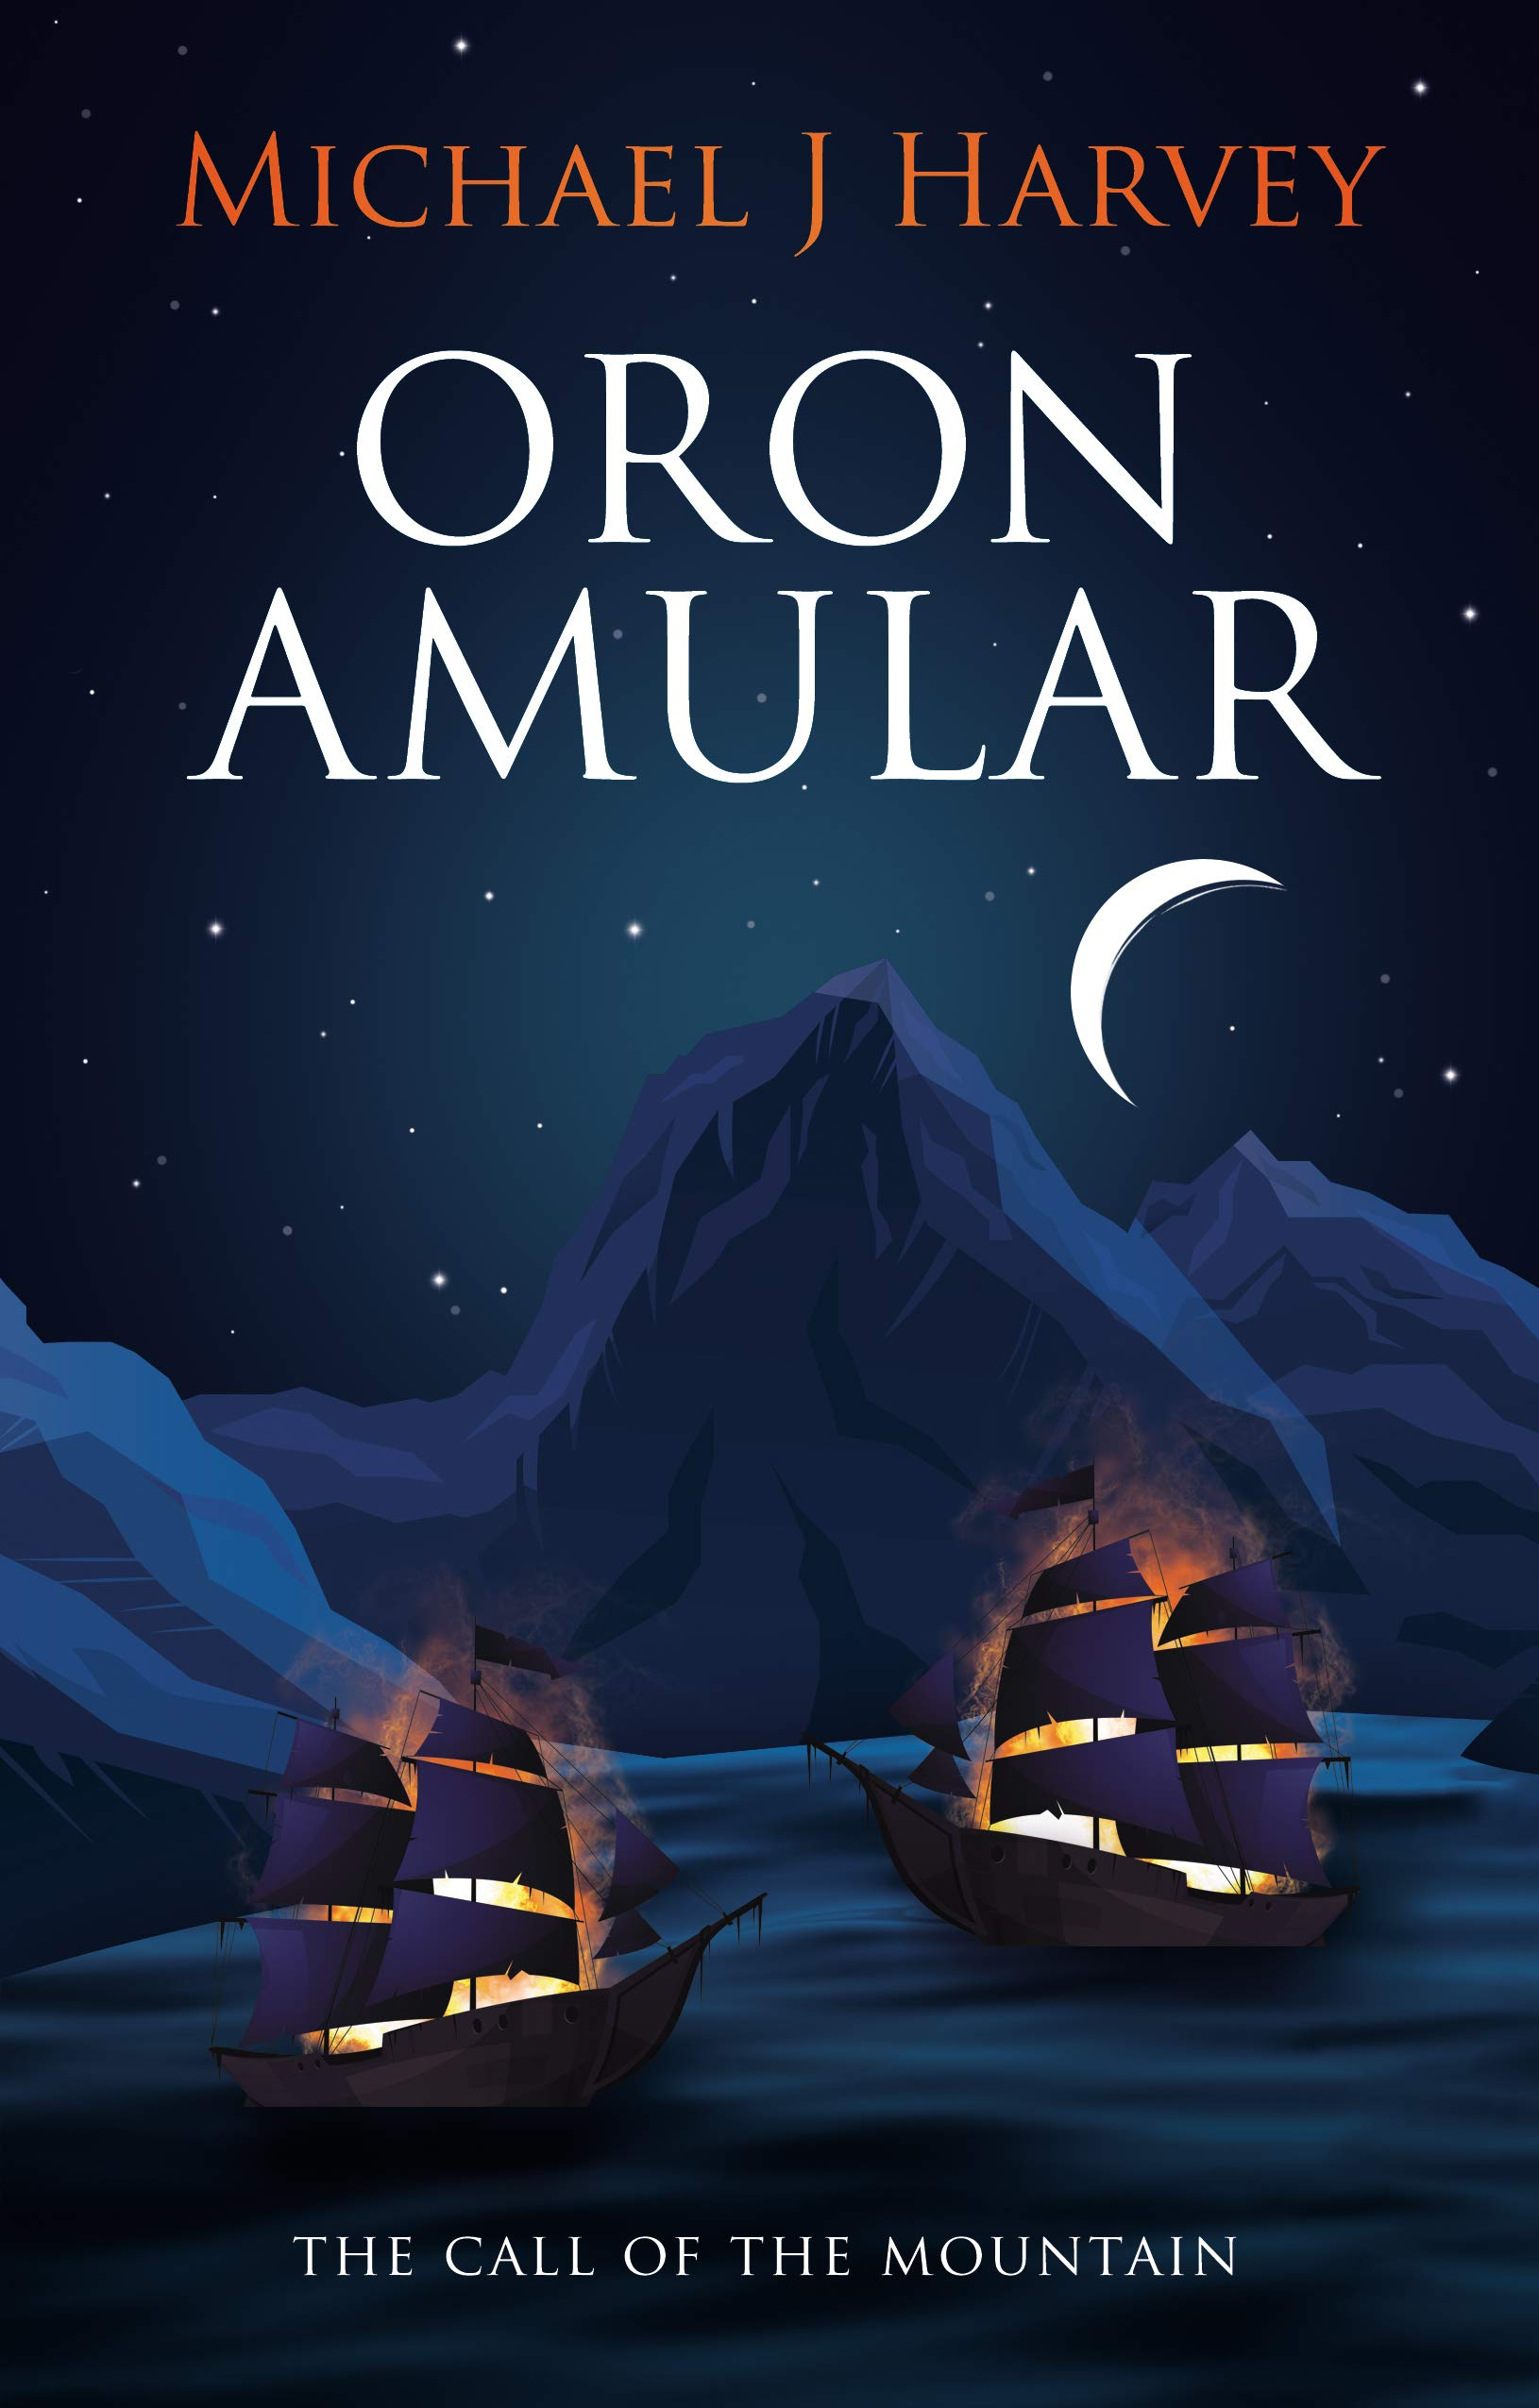 Amazon.com: Oron Amular: 1. The Call of the Mountain ...